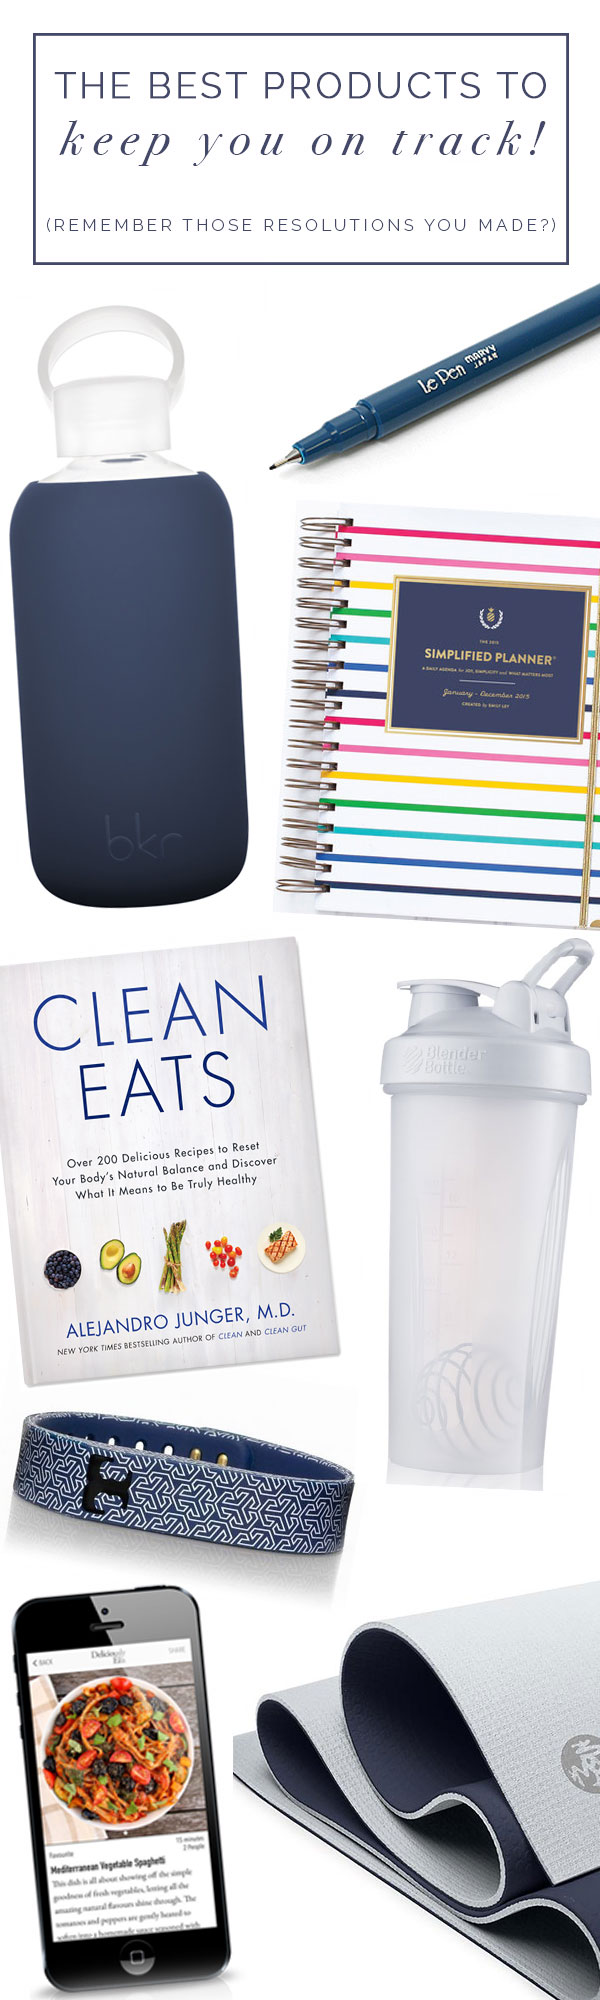 tips and products to keep you on track